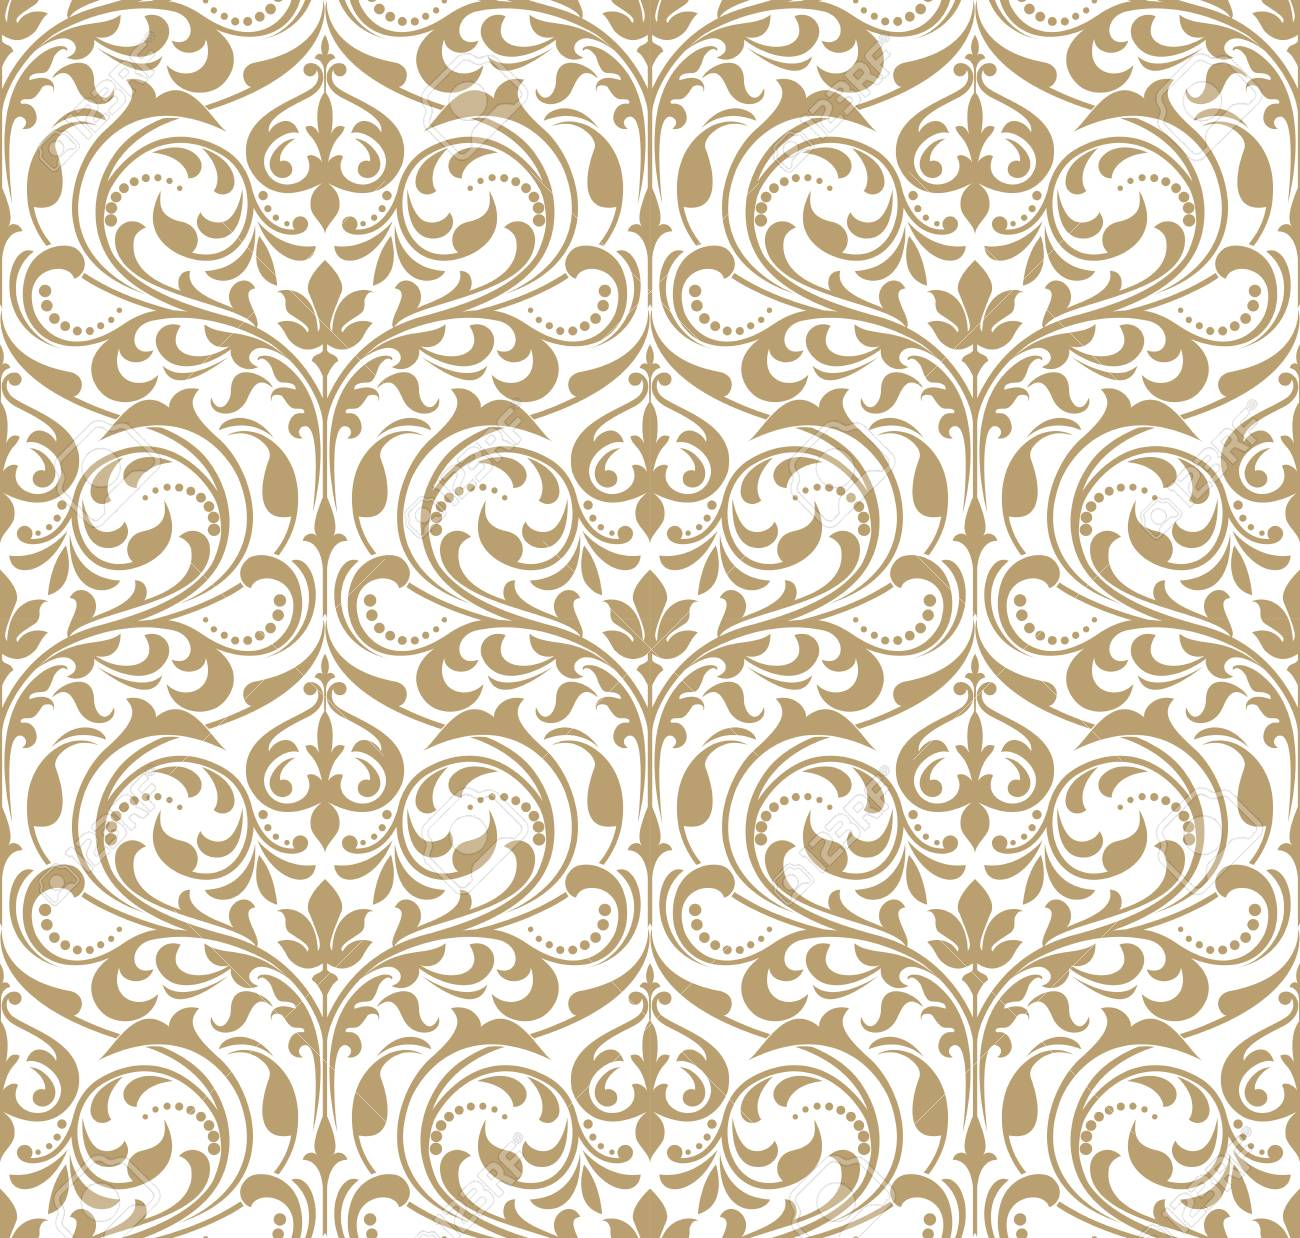 Floral pattern for Wallpaper baroque, damask seamless vector background in gold and white ornament. - 95251473